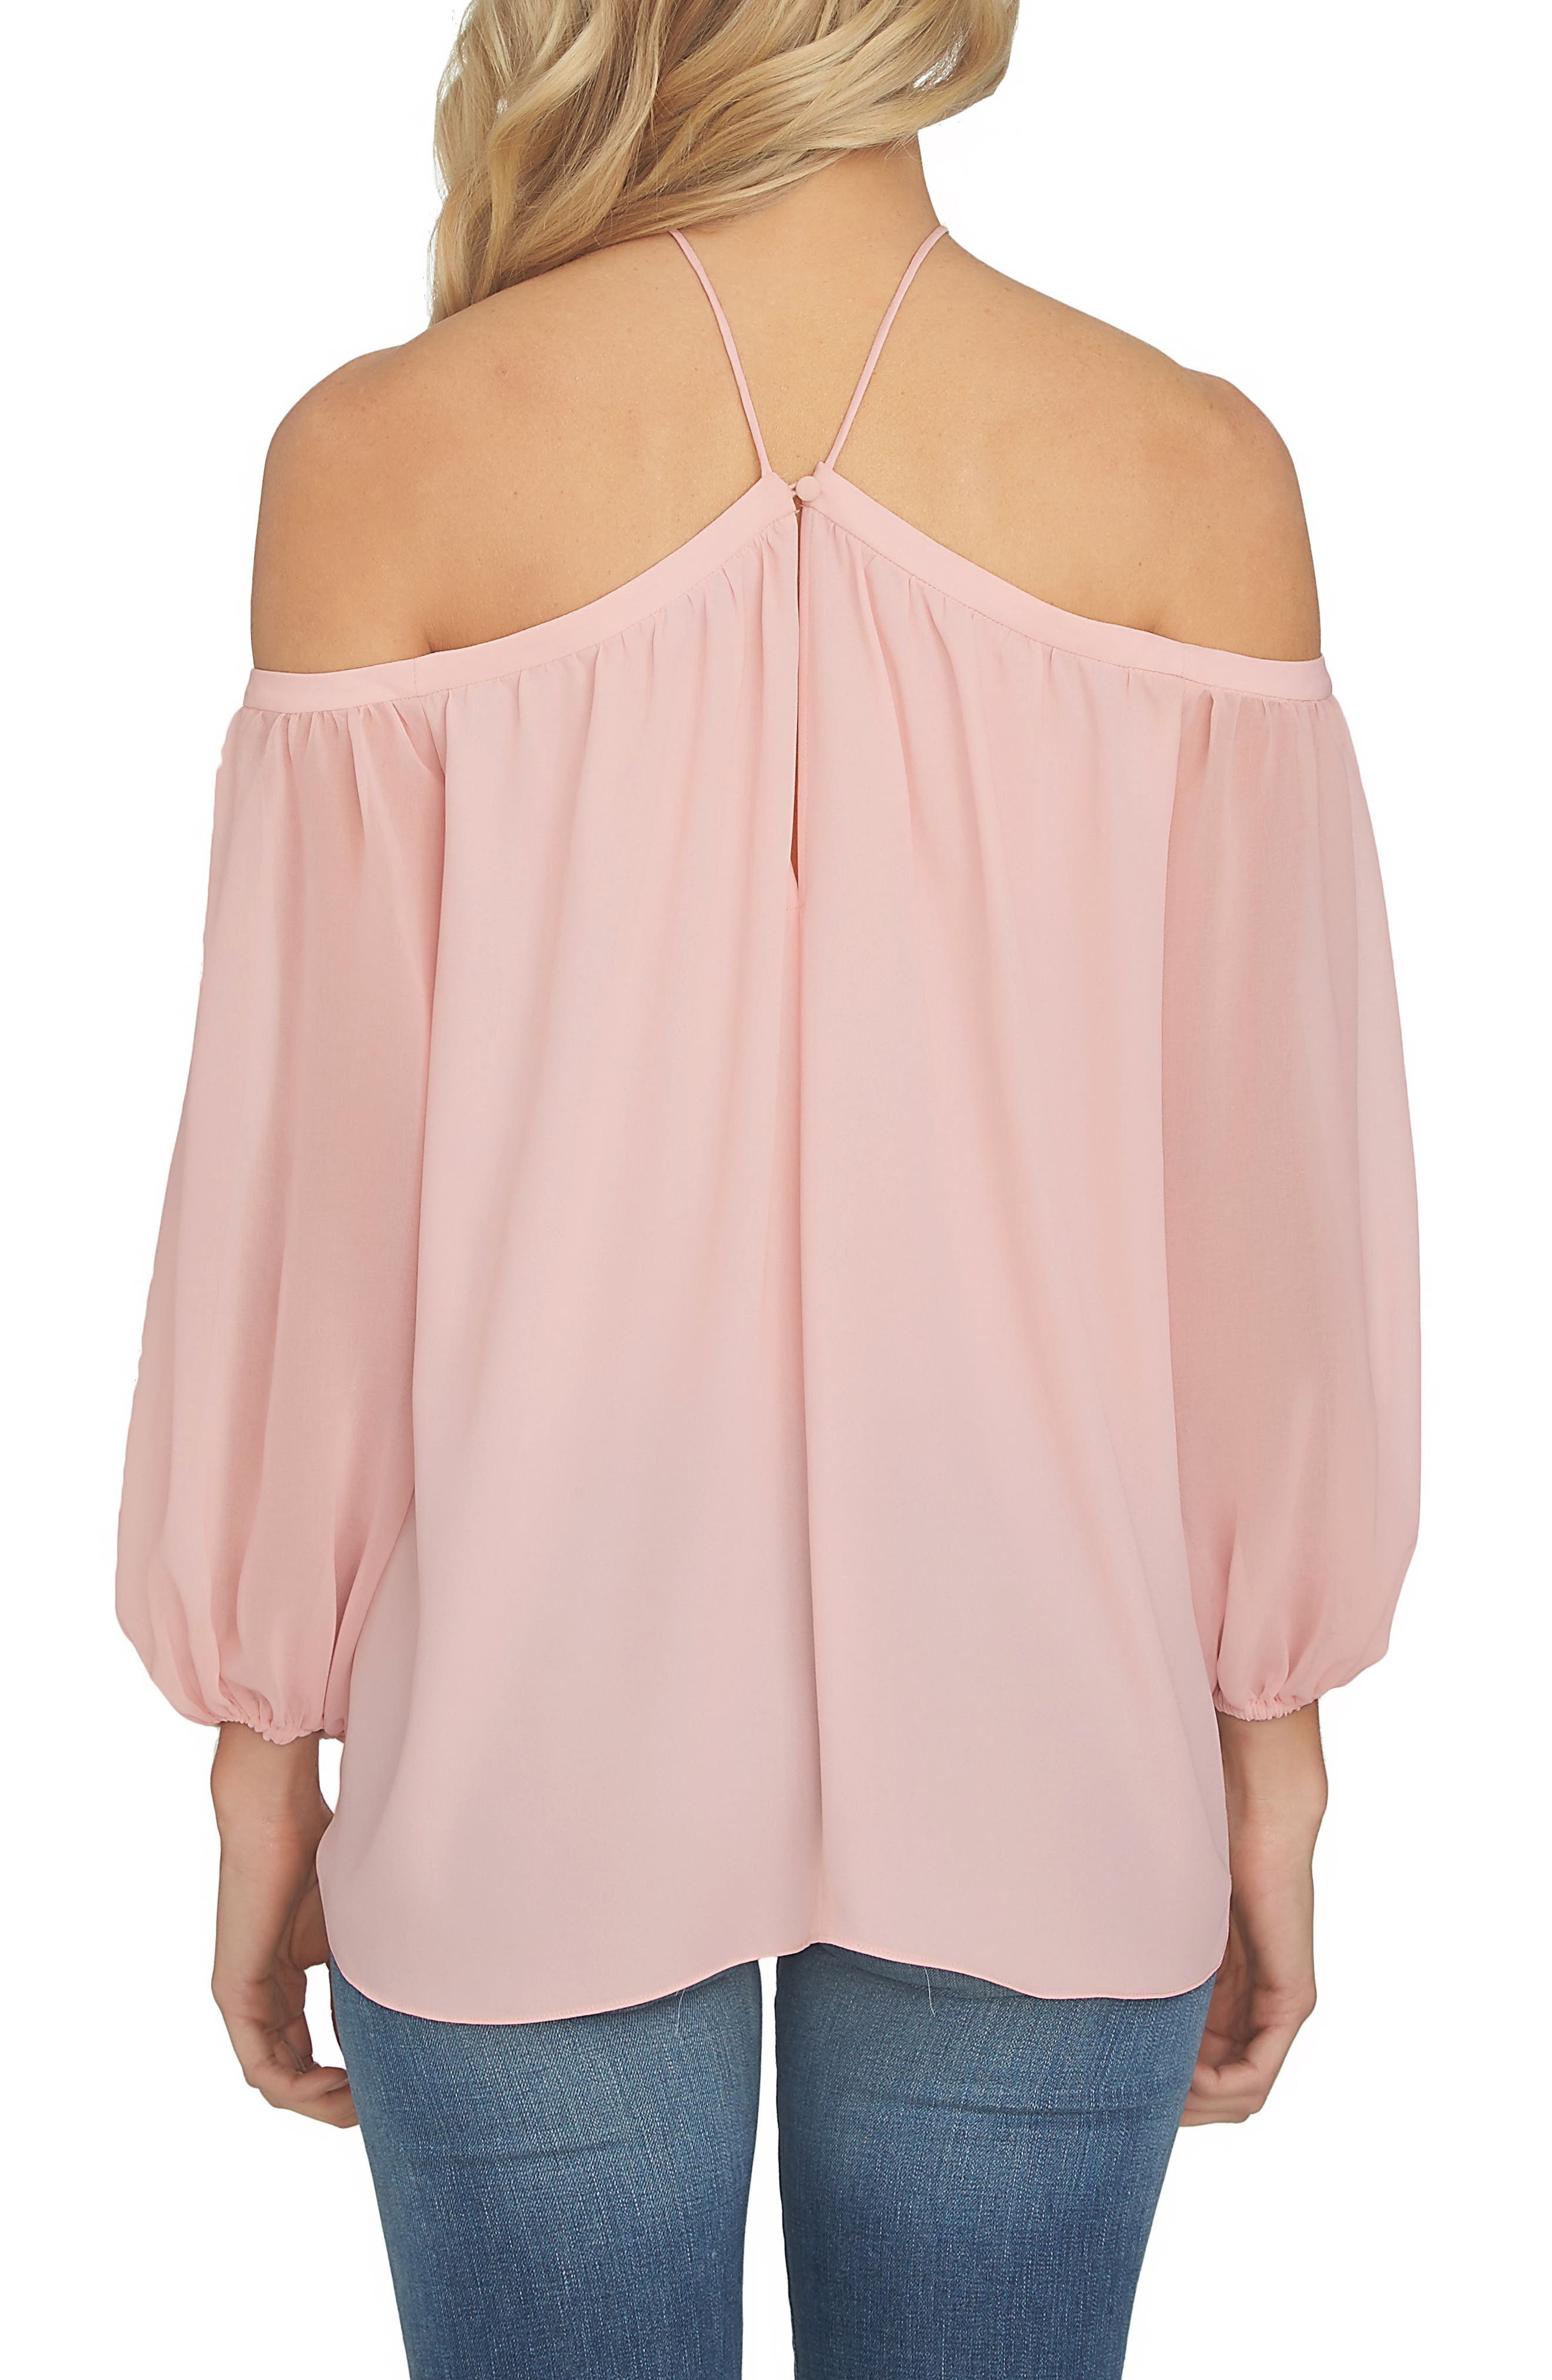 060a7e2dbc84c Women s Night Out Tops